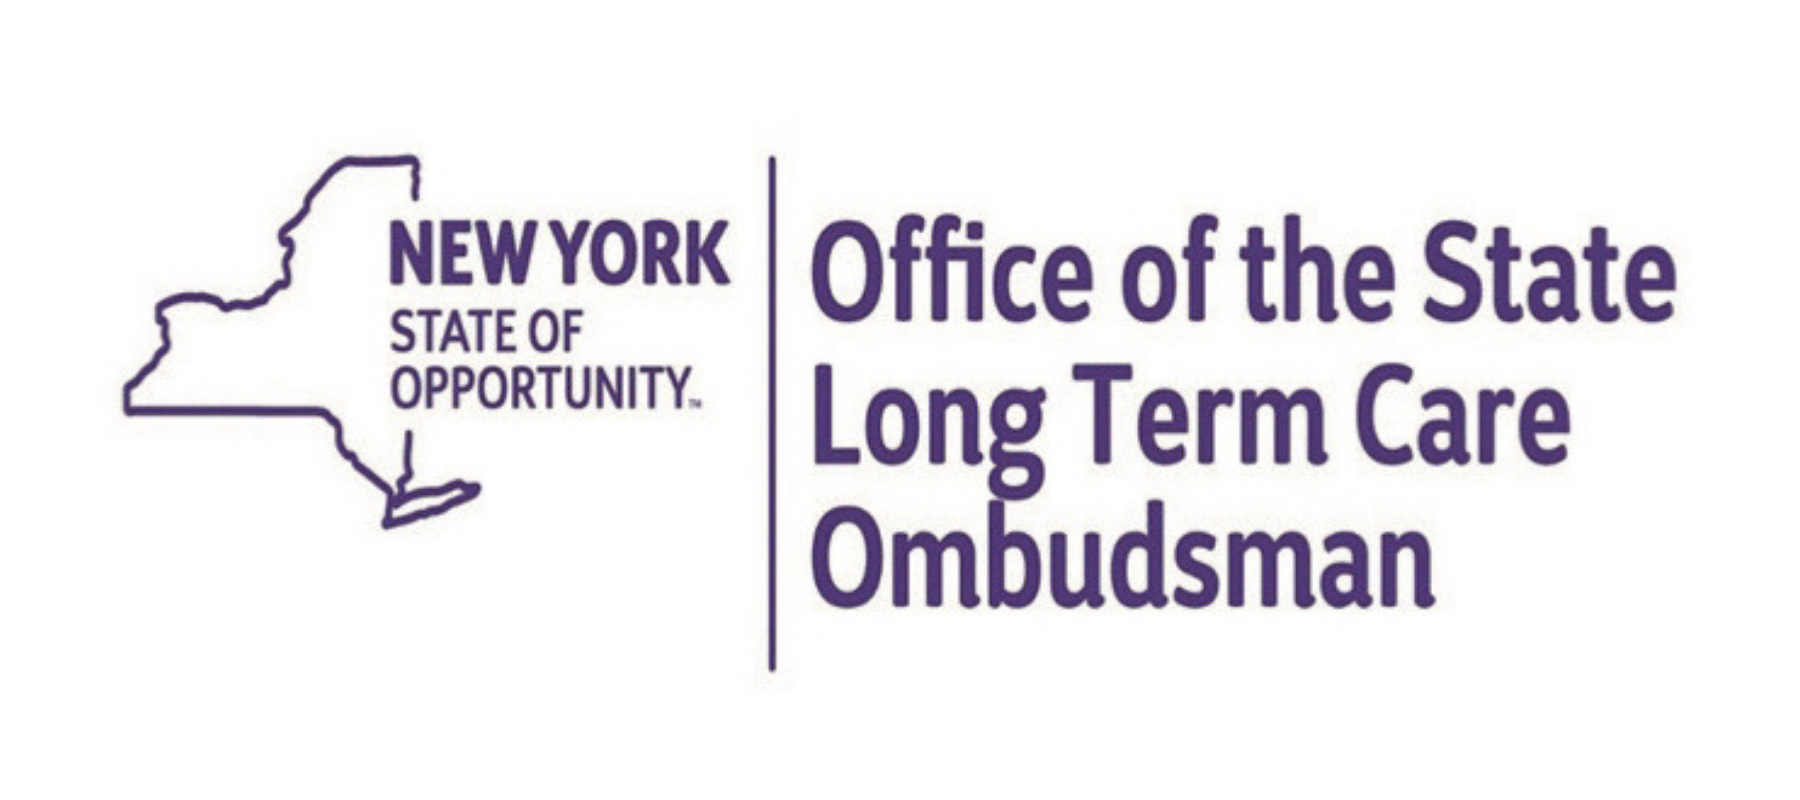 New York State of Opportunity - office of the state long term care ombudsman